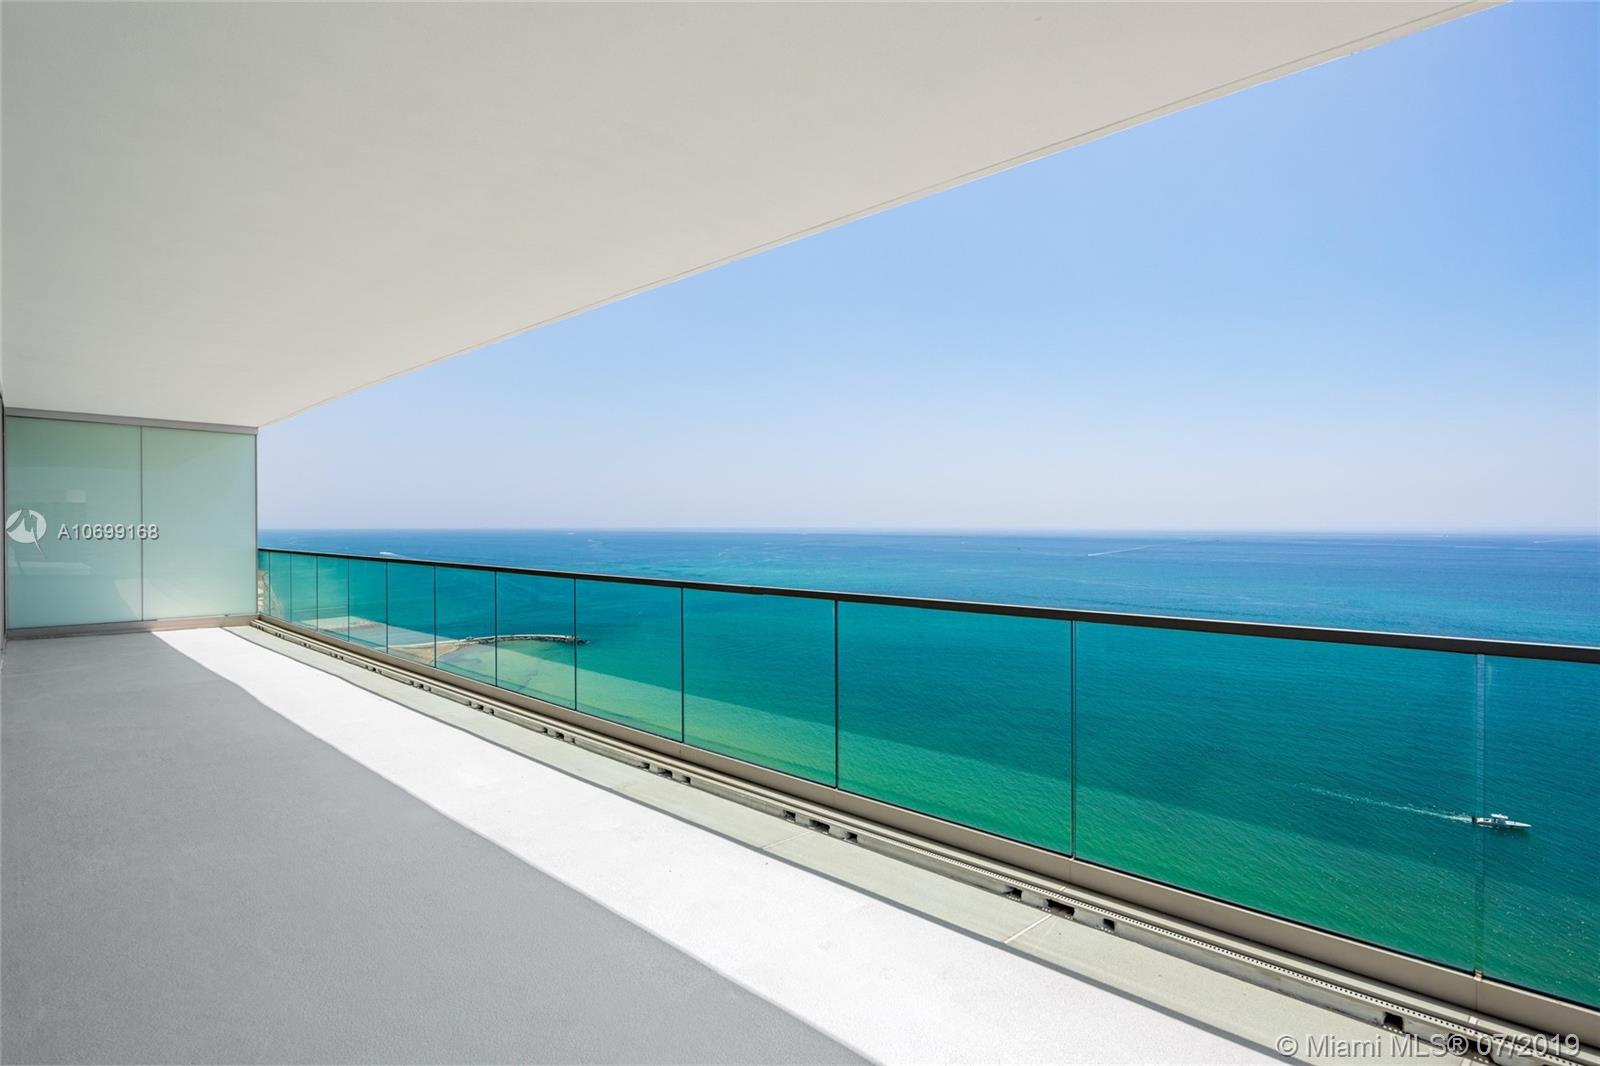 Be the first to experience oceanfront luxury lifestyle in unit 2501 at the exclusive Oceana Bal Harbour. Prime corner unit featuring flow-through design with unobstructed views of Atlantic Ocean, Intracoastal and downtown Miami from amazing deep wrap around terrace. This home in the sky offers floor-to-ceiling windows, gourmet kitchen with Gaggenau appliances, & spa-like bathrooms. Lavish amenities include 24-hour concierge, poolside restaurant, world-class spa, gym, cabanas, oversized pool and more.